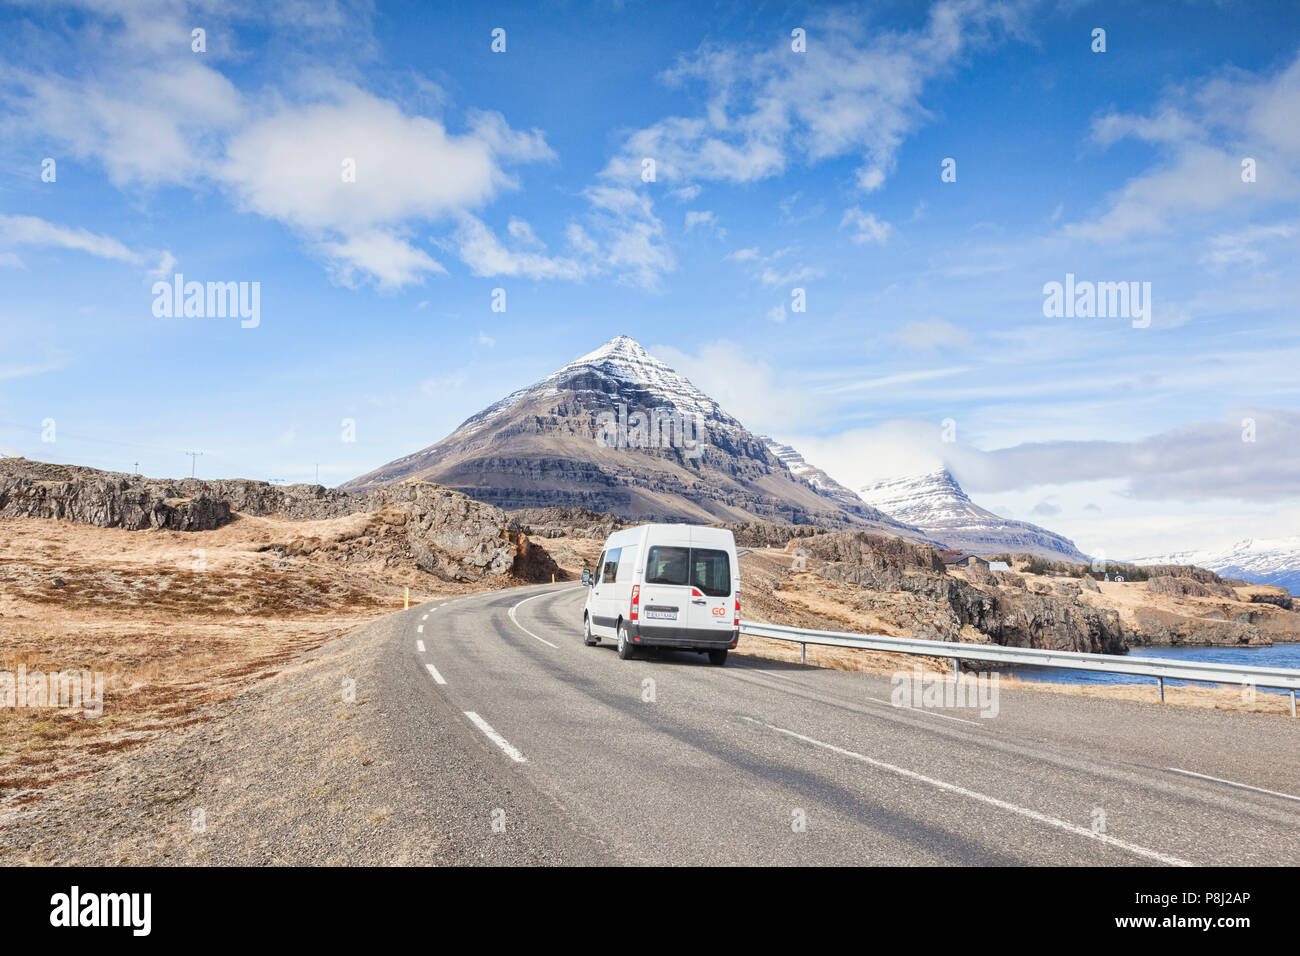 28 April 2018: South Iceland - White van on the Iceland Ring Road. - Stock Image